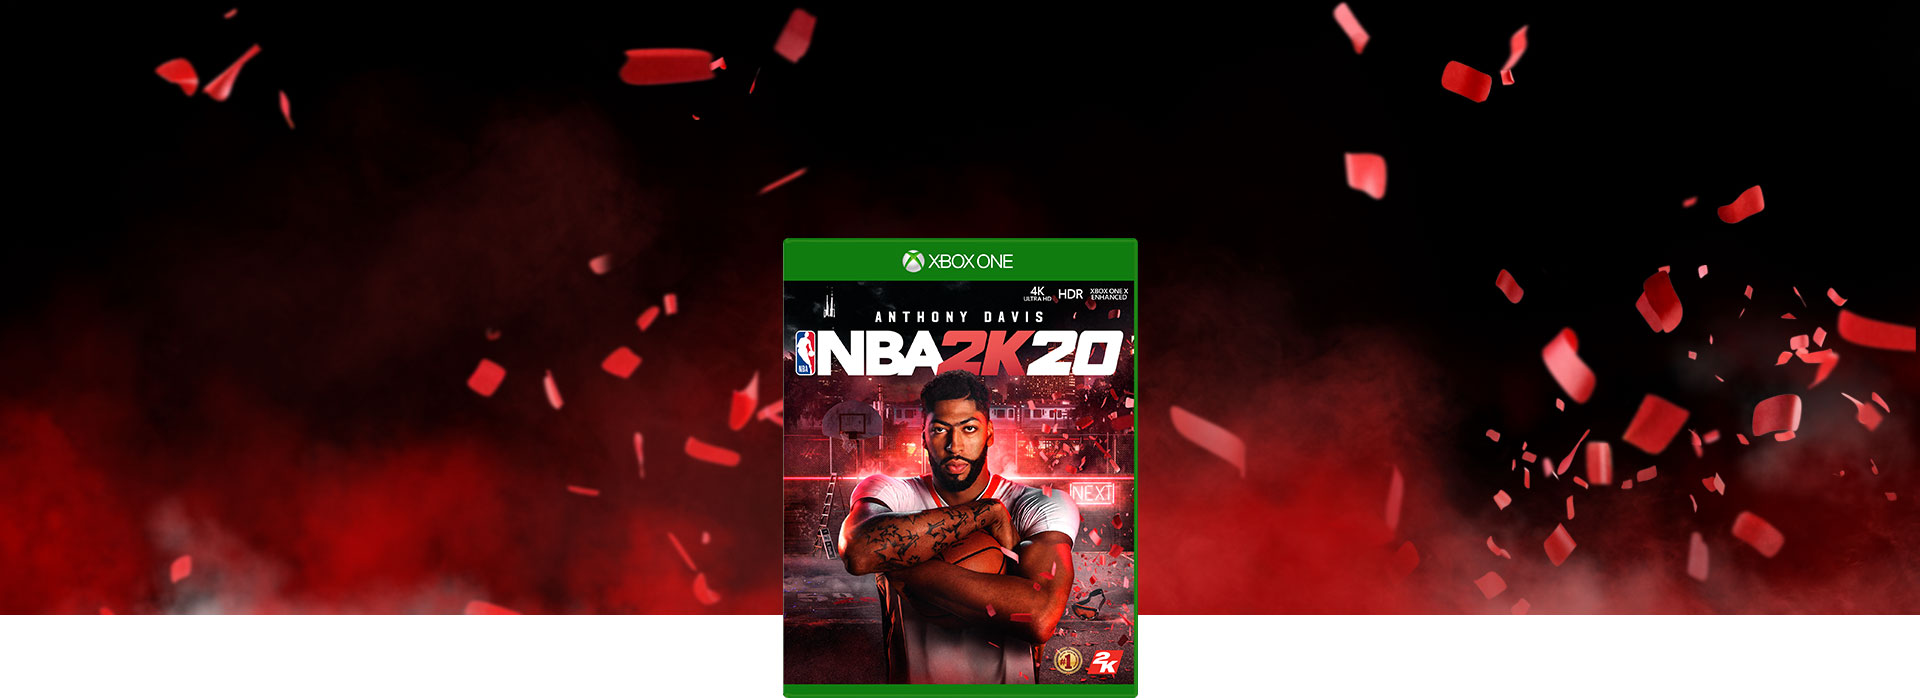 Boxshot of NBA 2K20, black background with red smoke coming up and red confetti